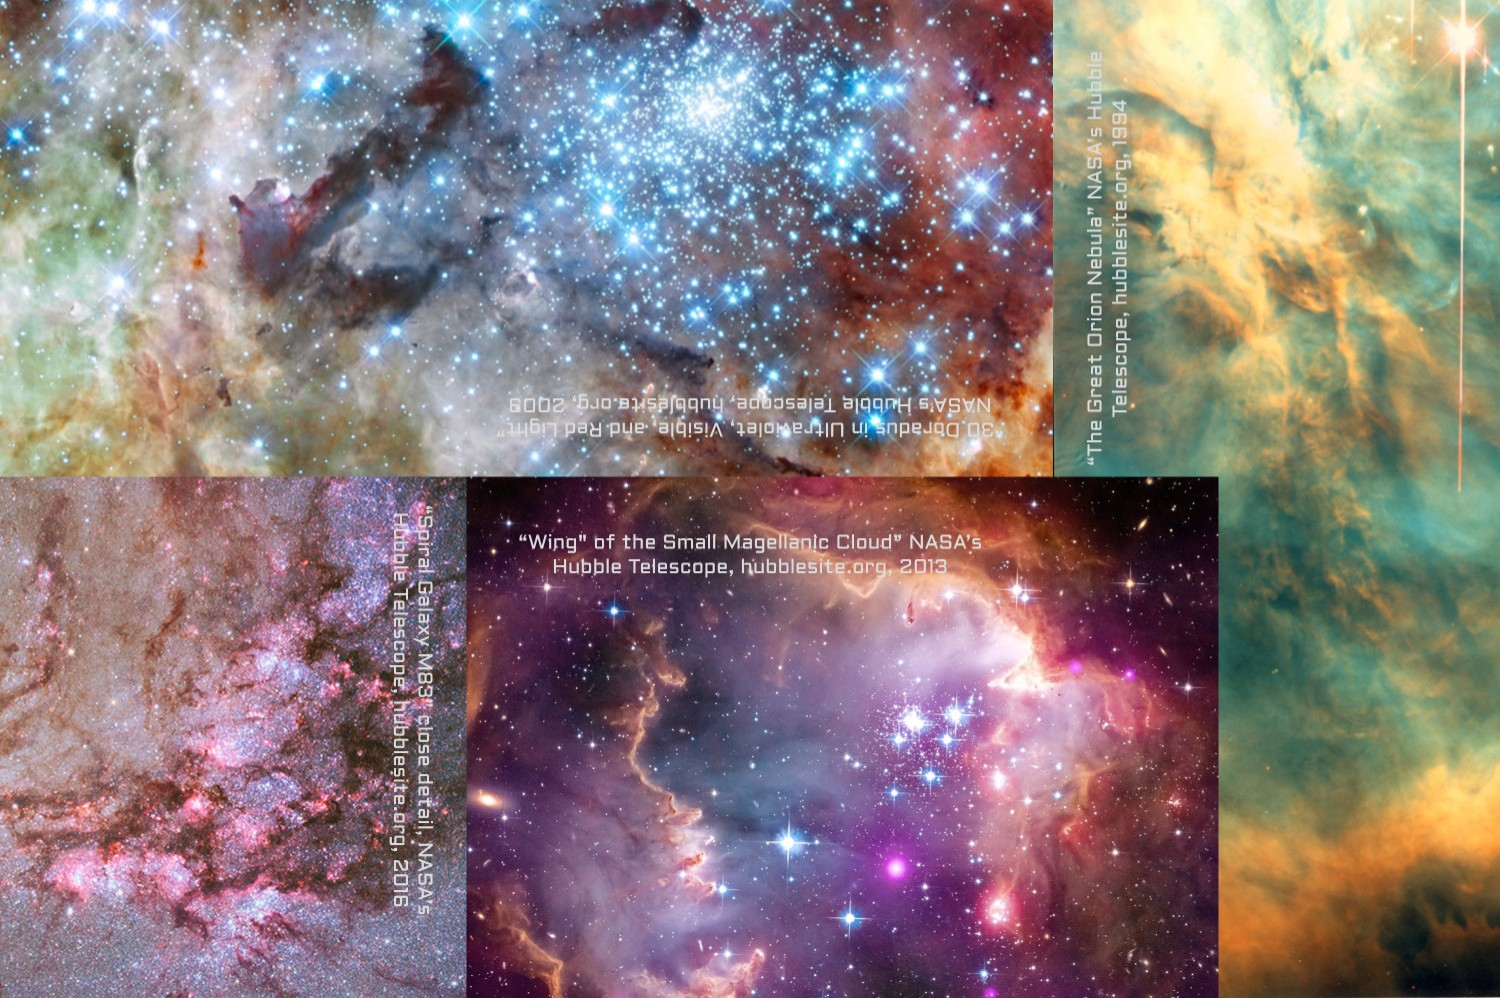 cherrico-cosmic-mugs-hubble-4-images-edited.jpg